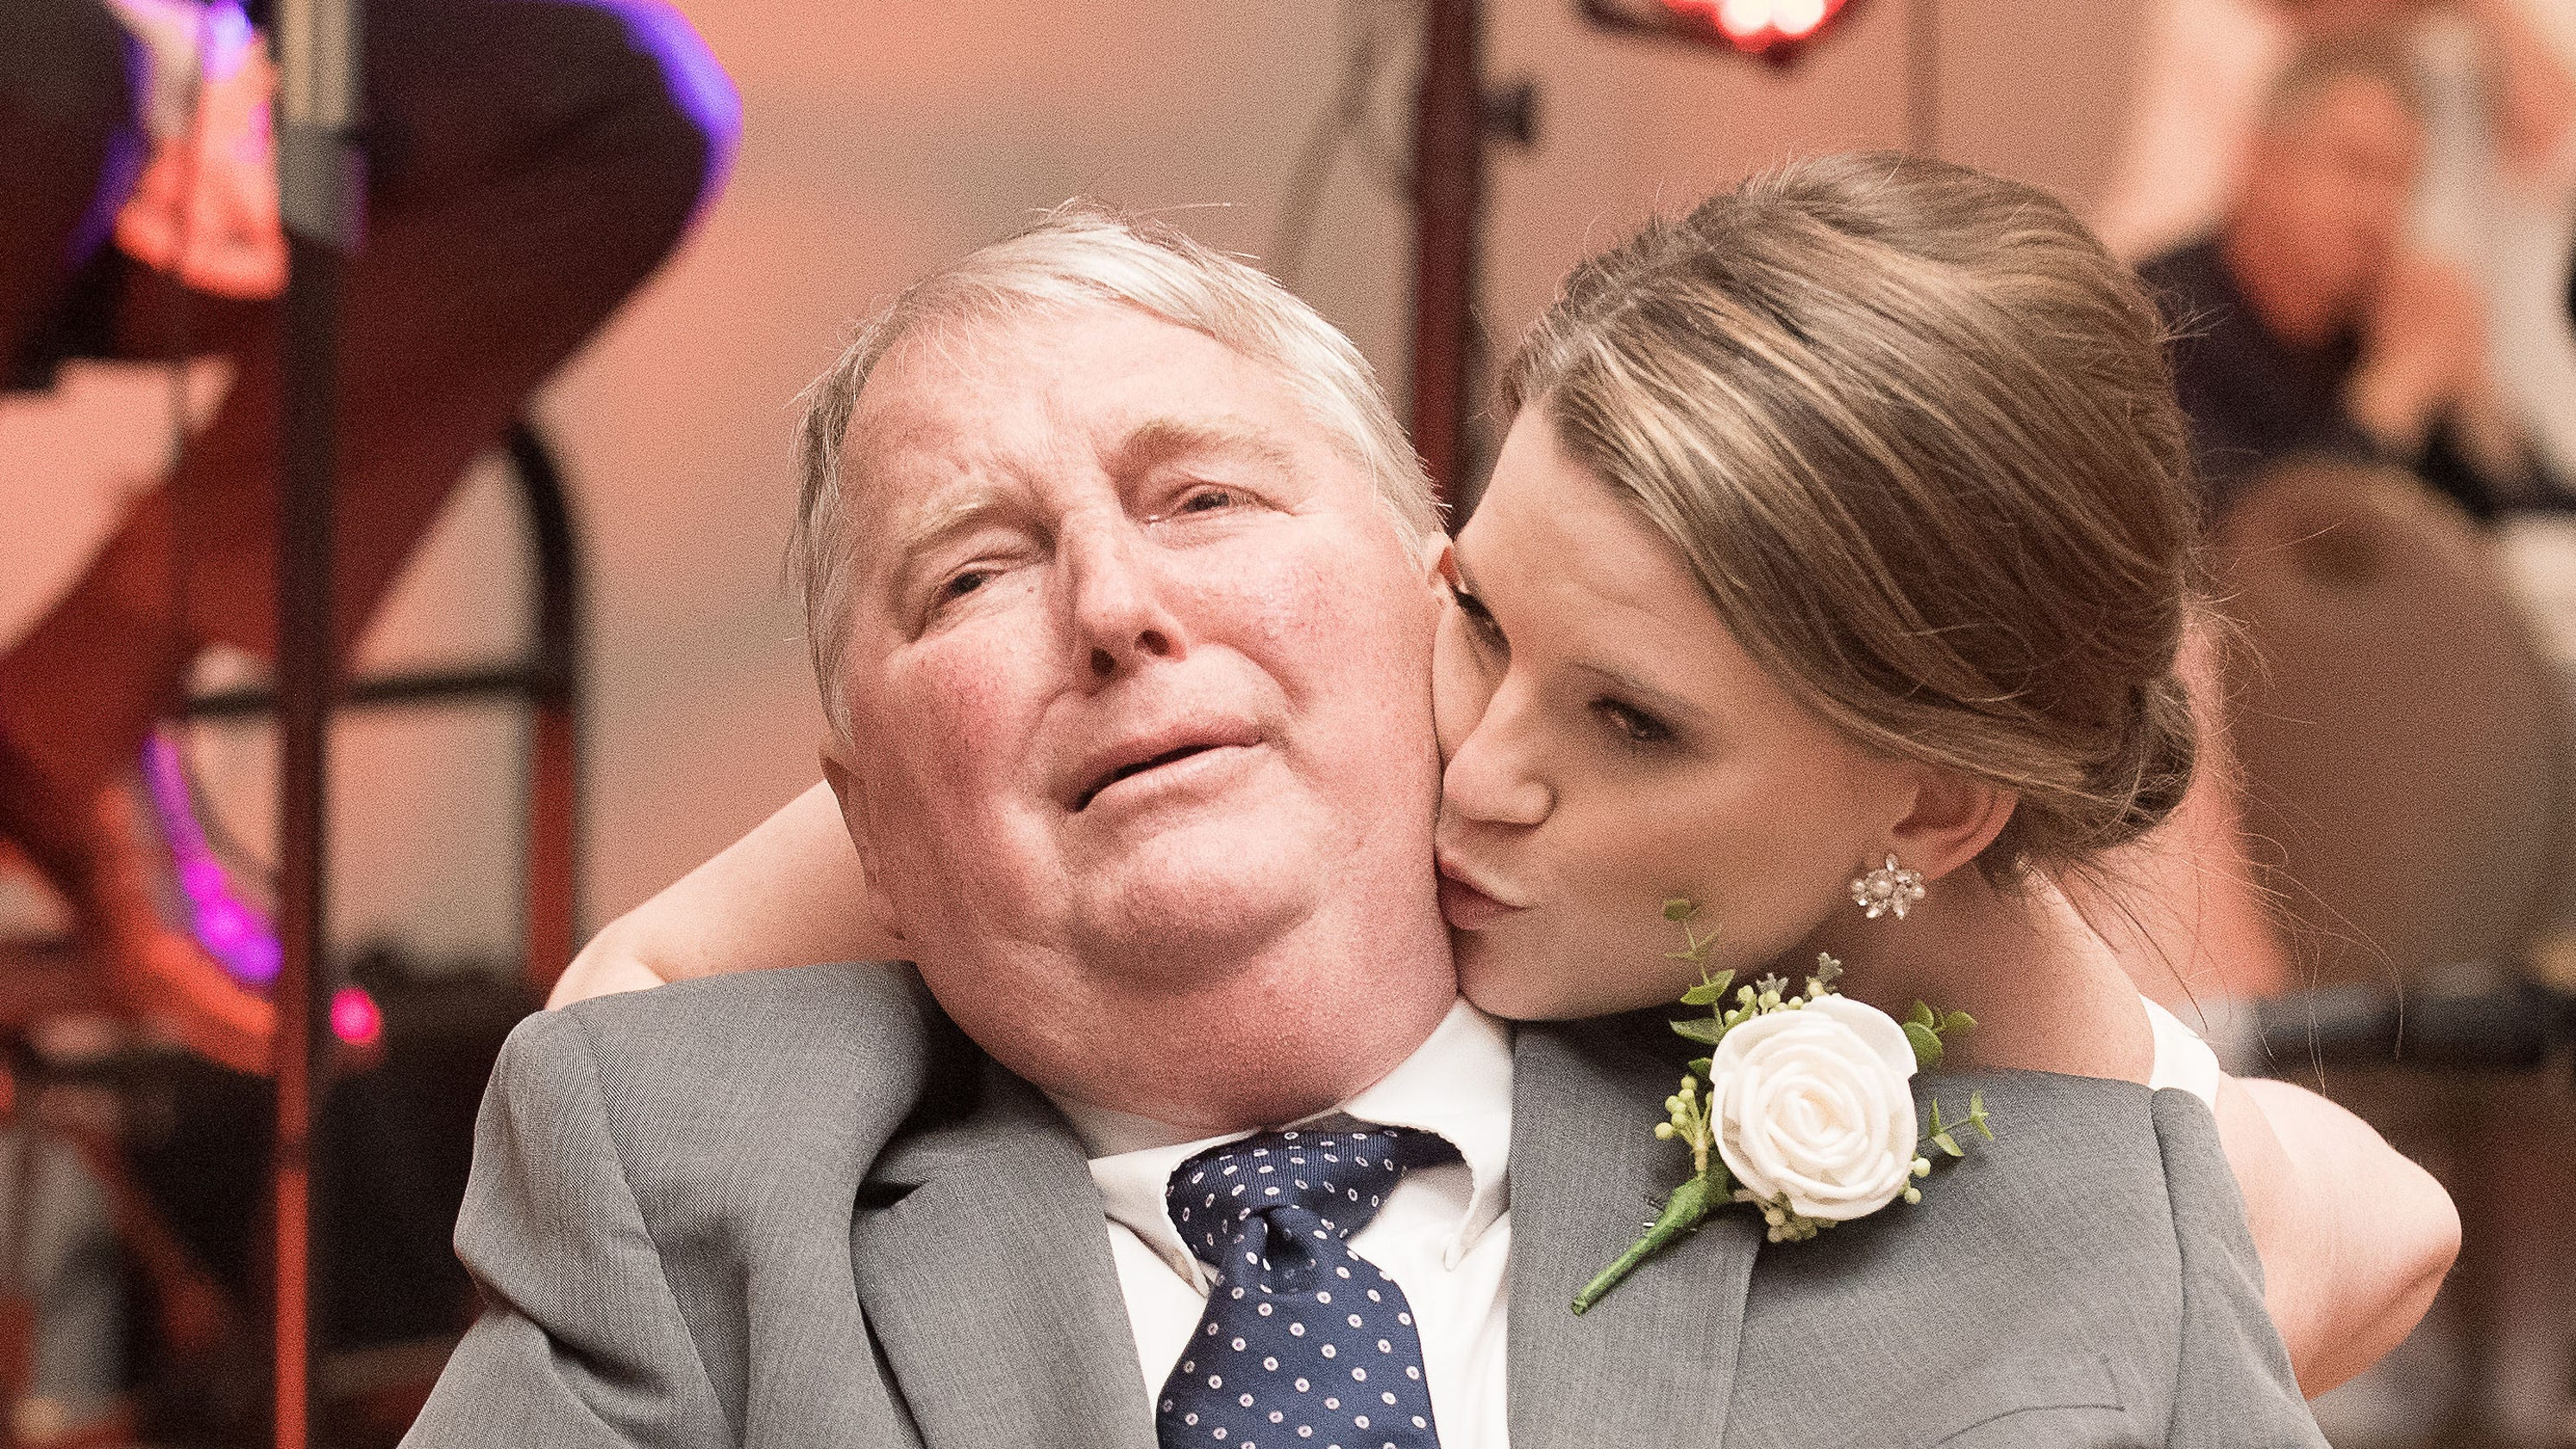 This bride's dance with her terminally ill father is giving us all the feels